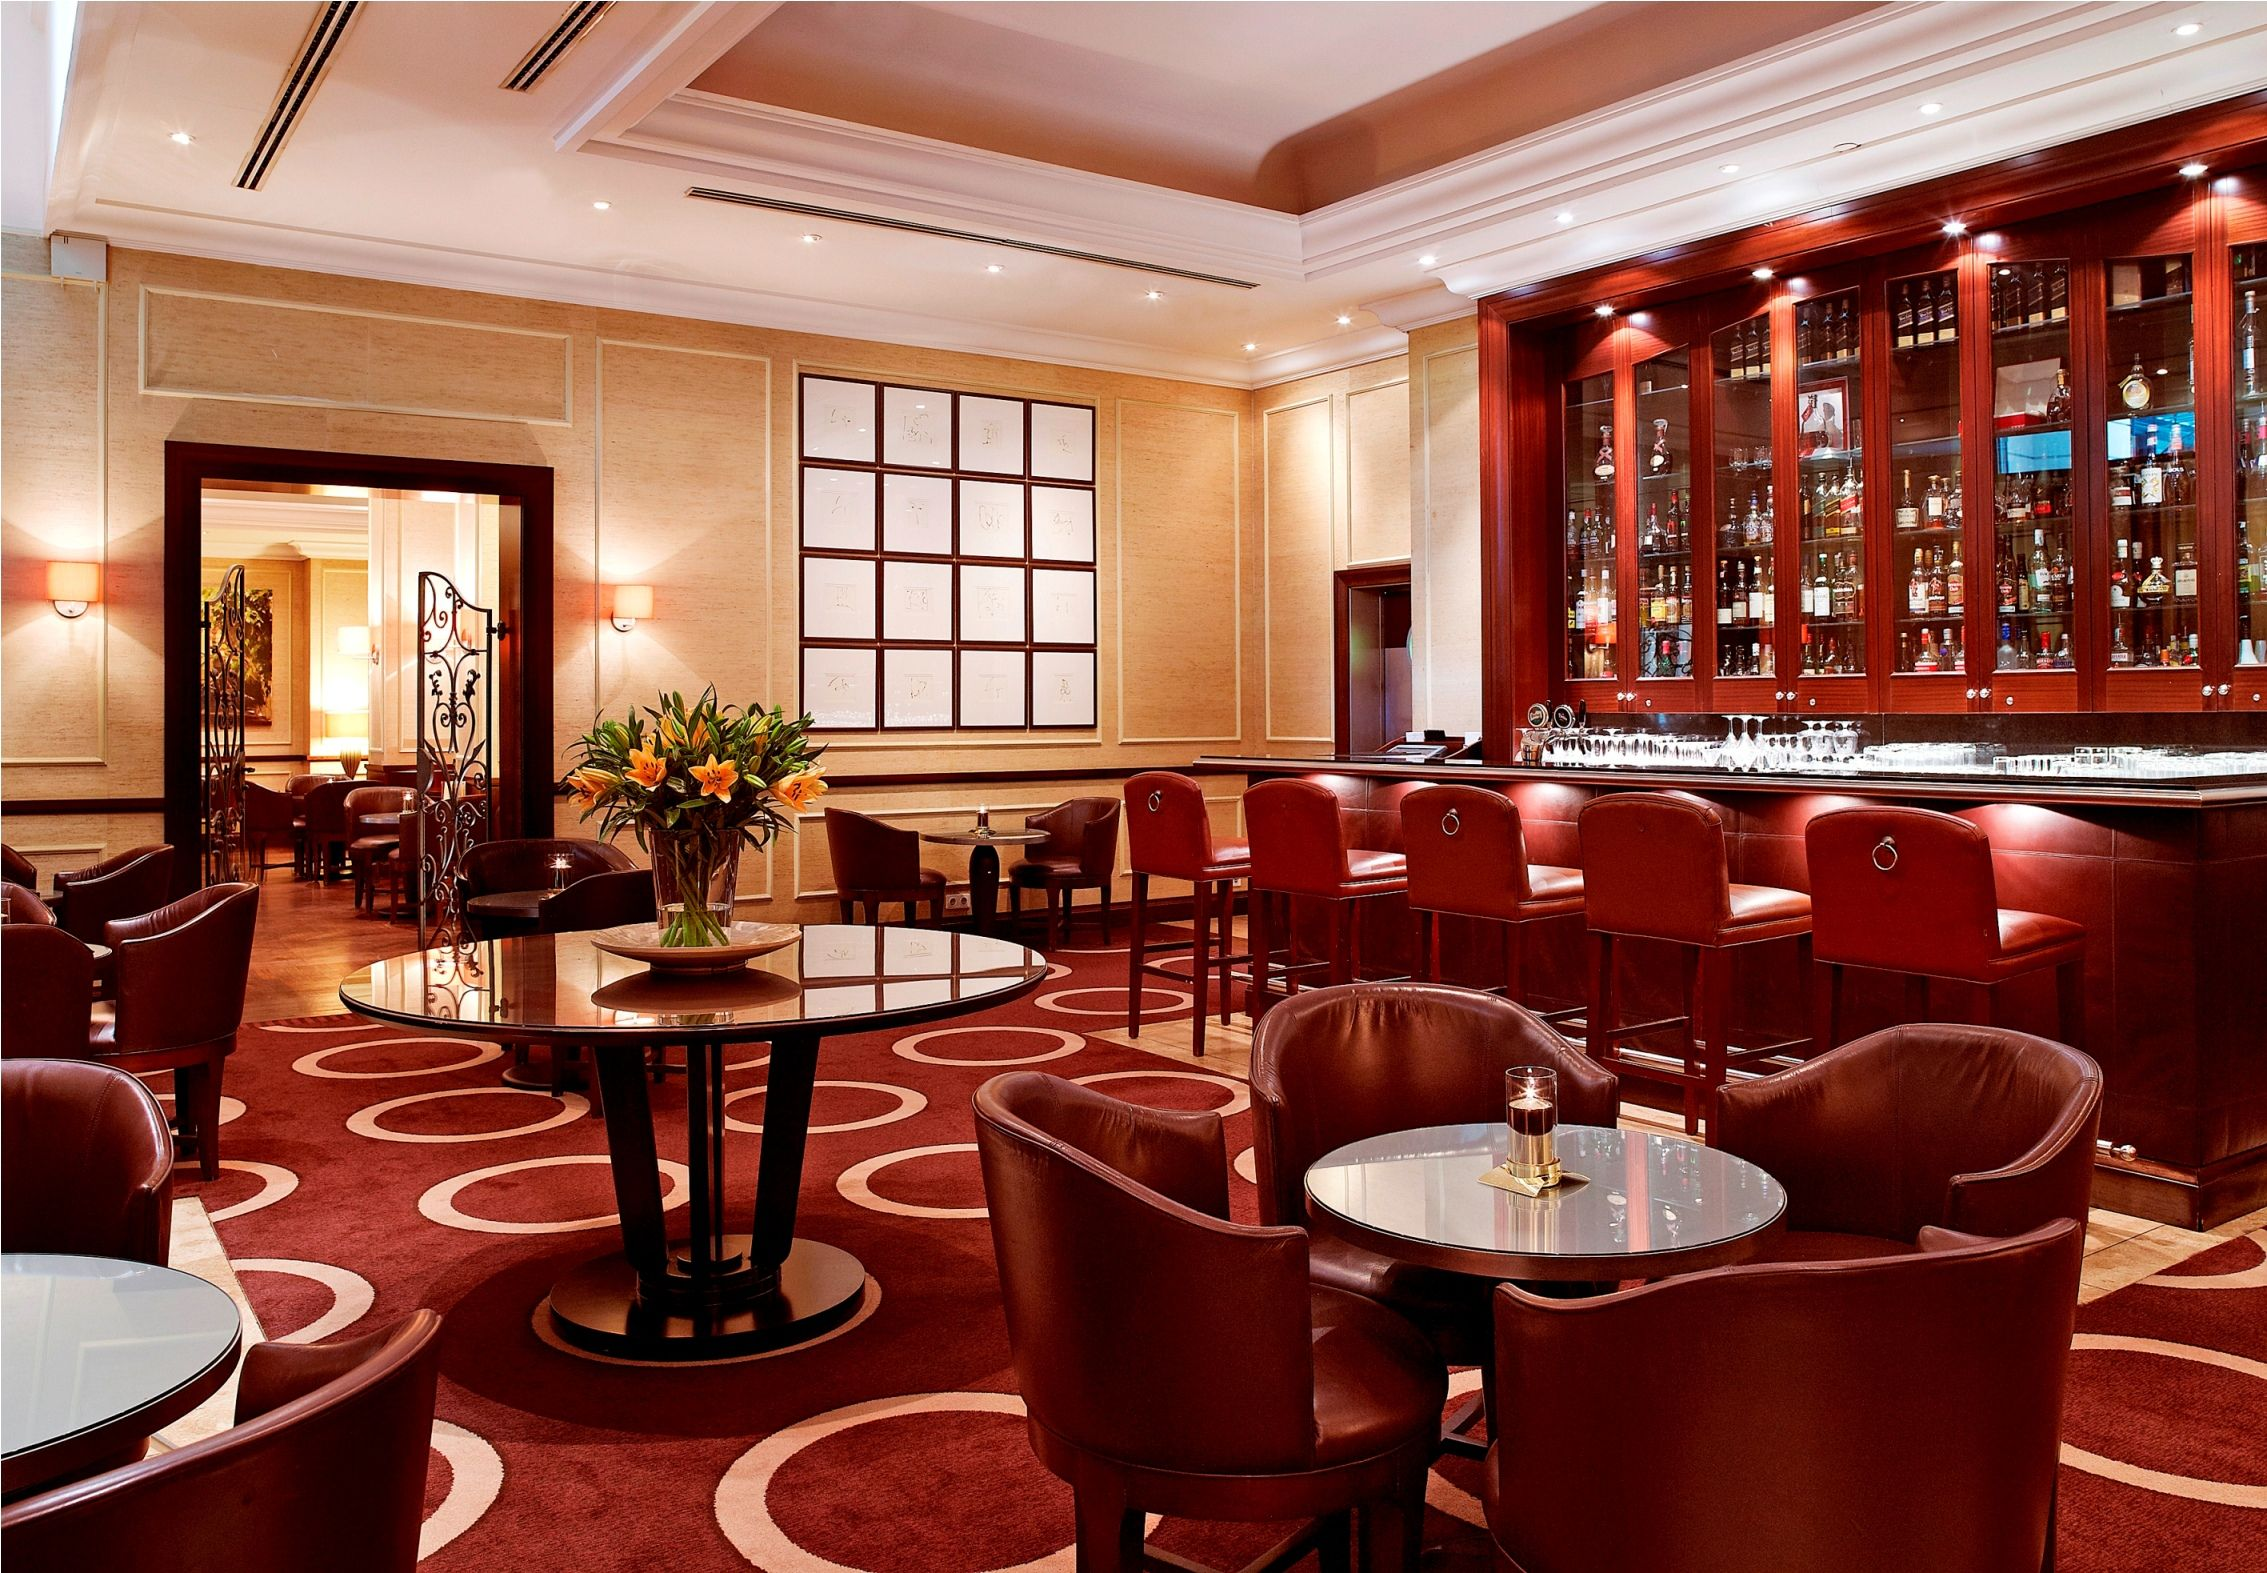 Le Bar Is An Elegant And Relaxing Lounge Serving Light Snacks It Is The Ideal Place To Meet For An Aperitif Or An After Dinner Corinthia Hotel Hotel Hotel Bar